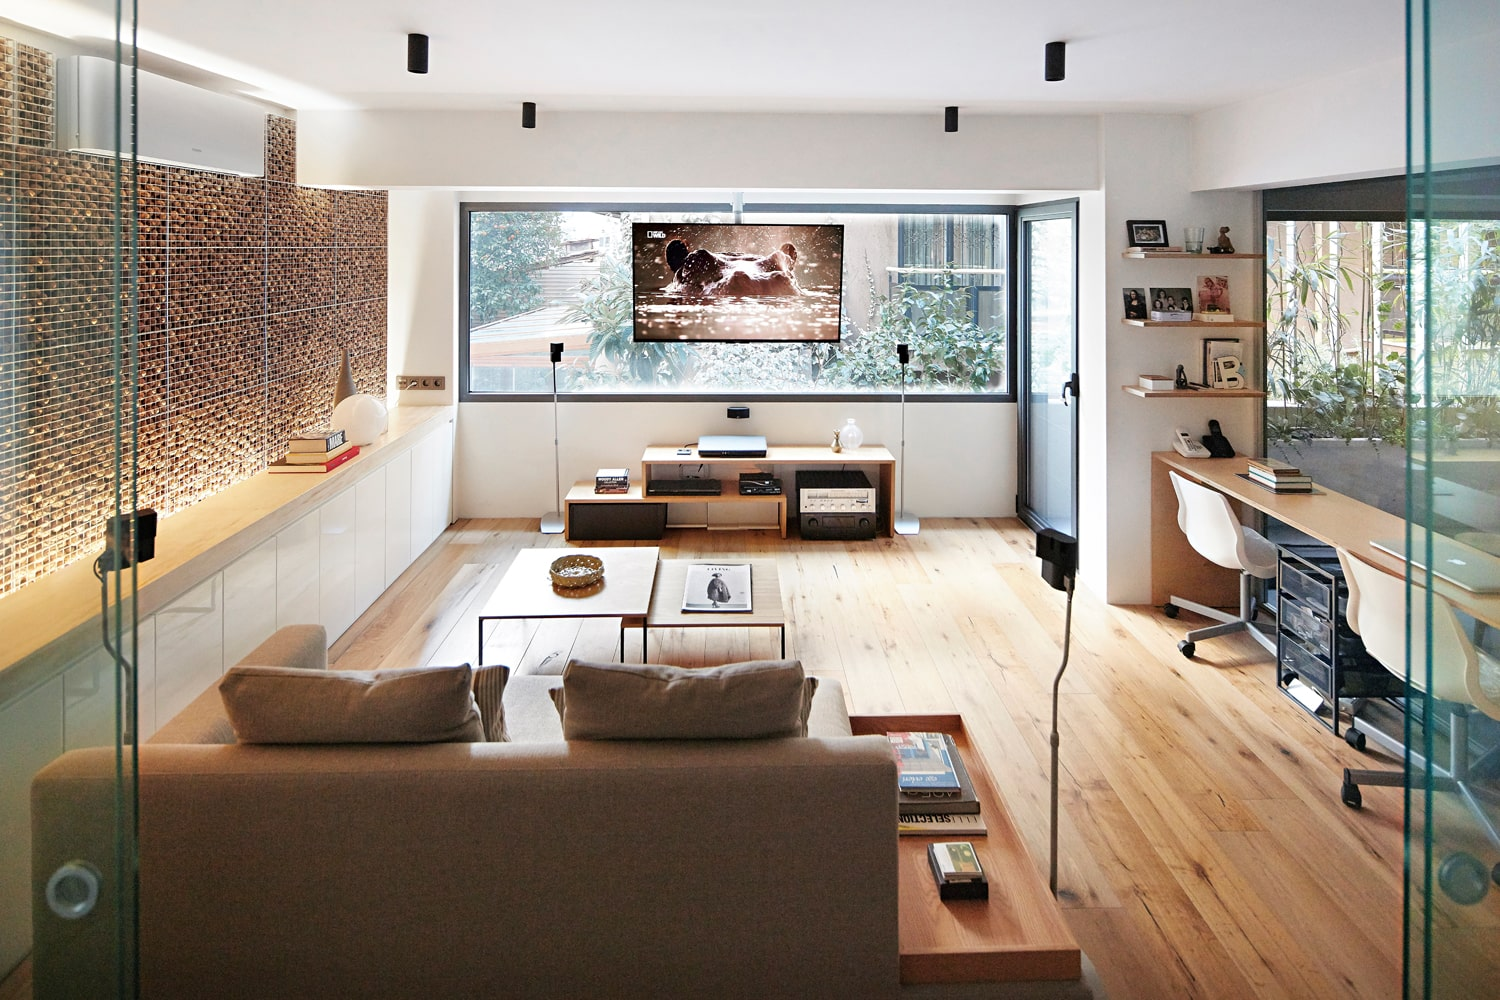 On the opposite of this walnut wall is a work area that has a long wooden desk that matches the hardwood flooring adorned with a large glass wall.